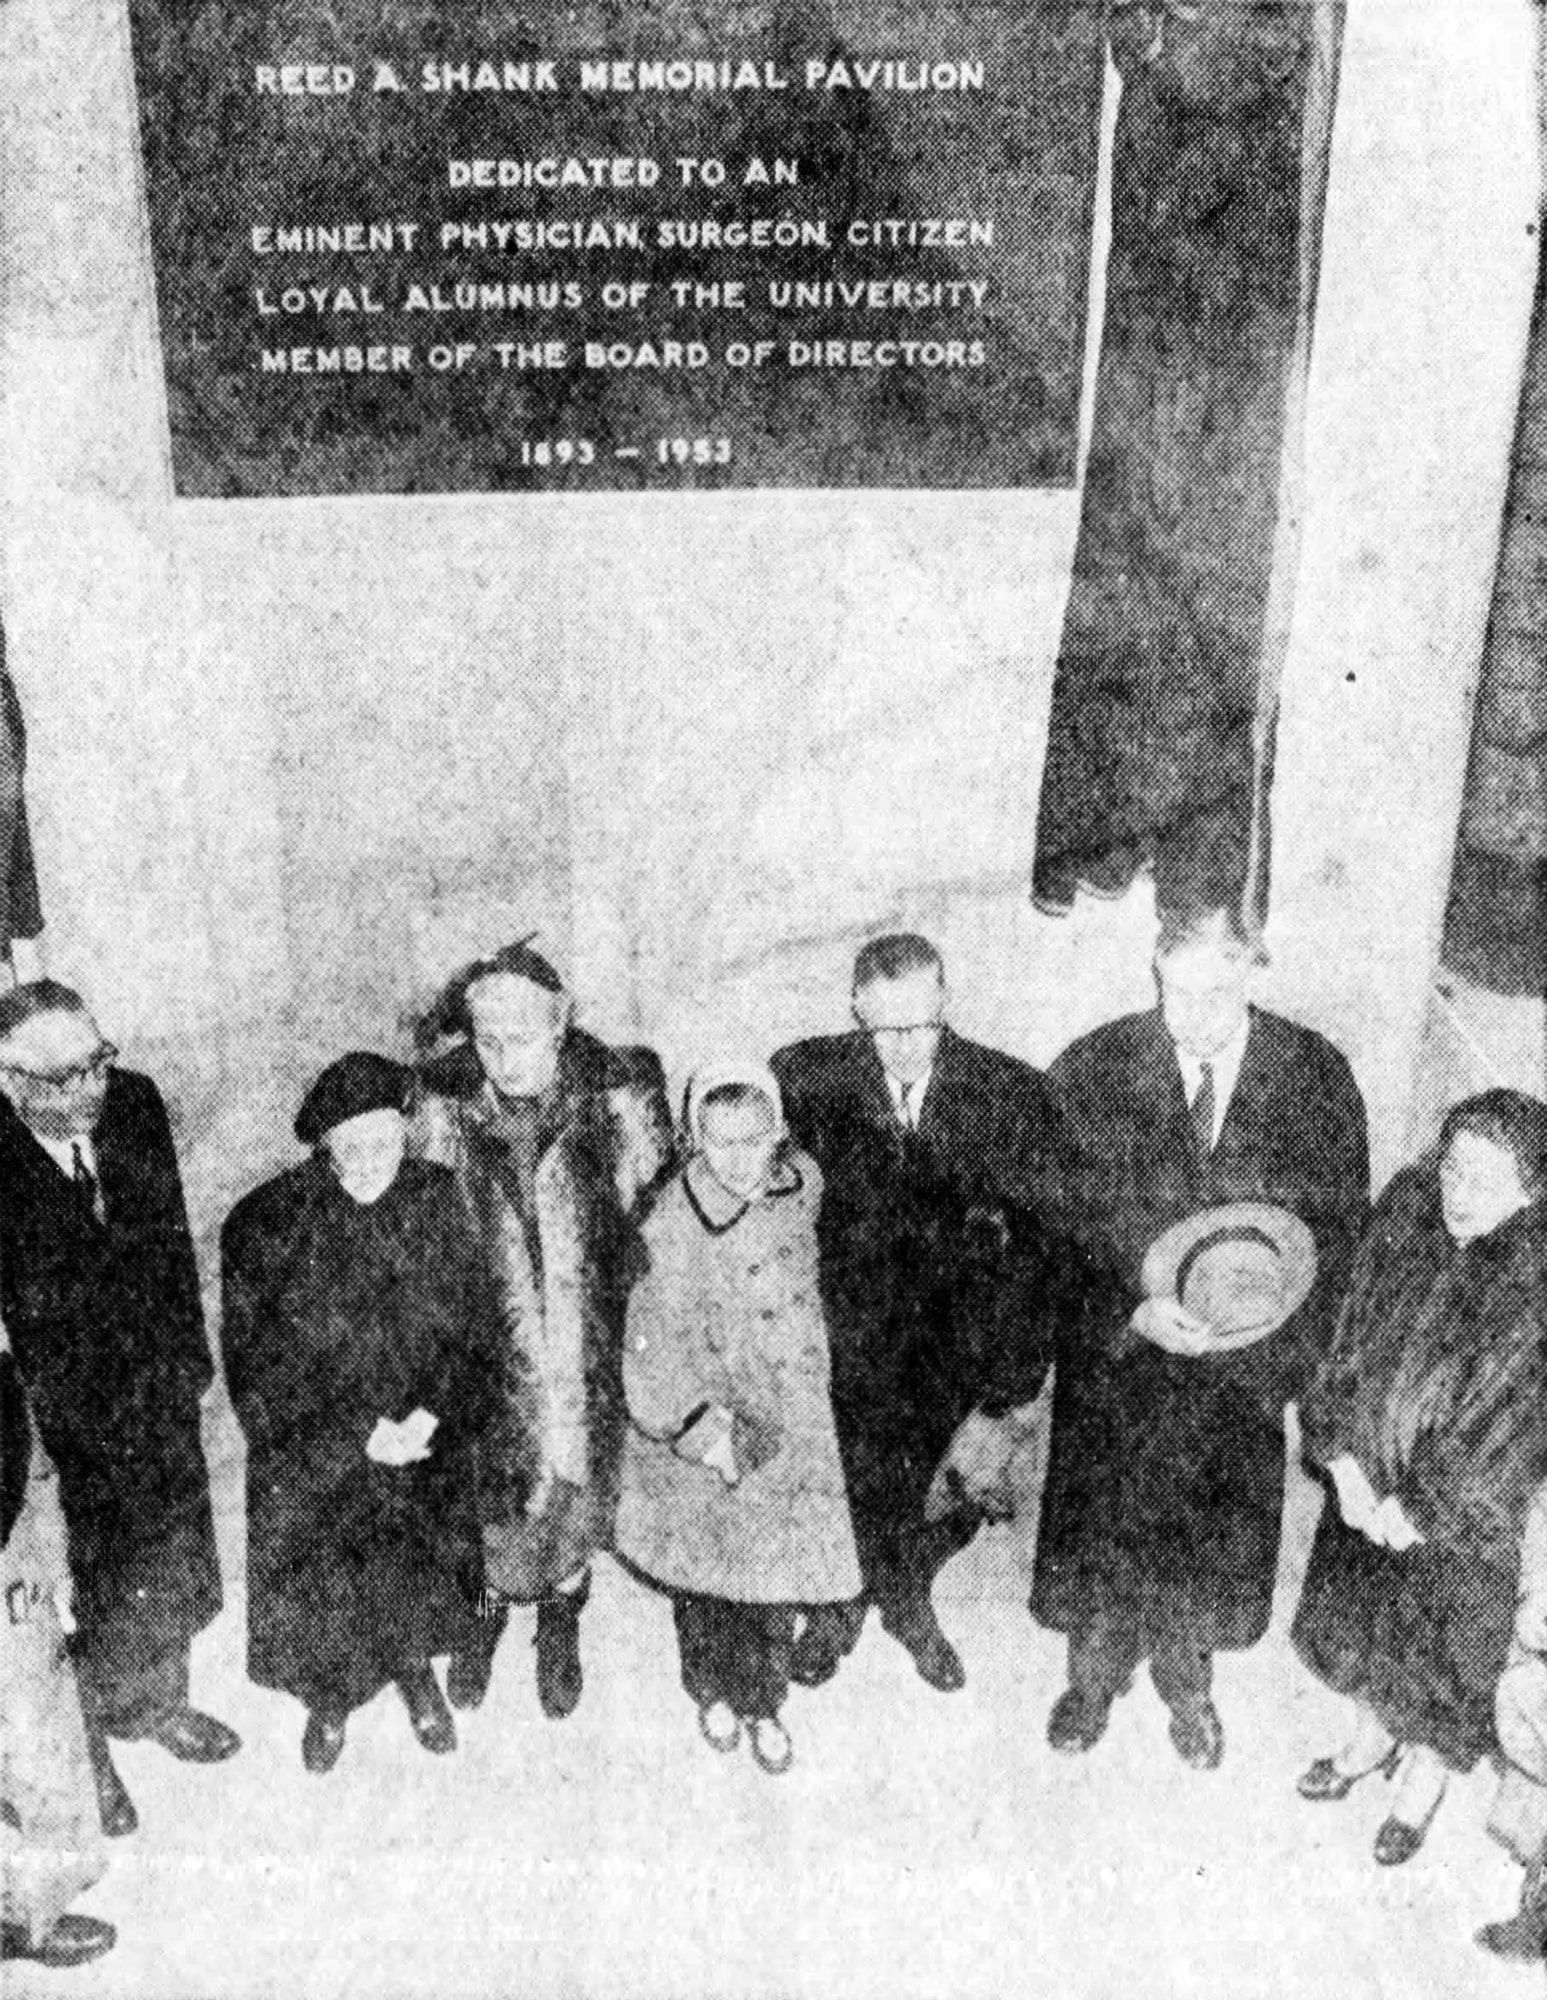 Mrs. Shank (far right) and other Shank family members pose with UC officials in front of the new dedication plaque—November 25, 1954 [Enquirer]